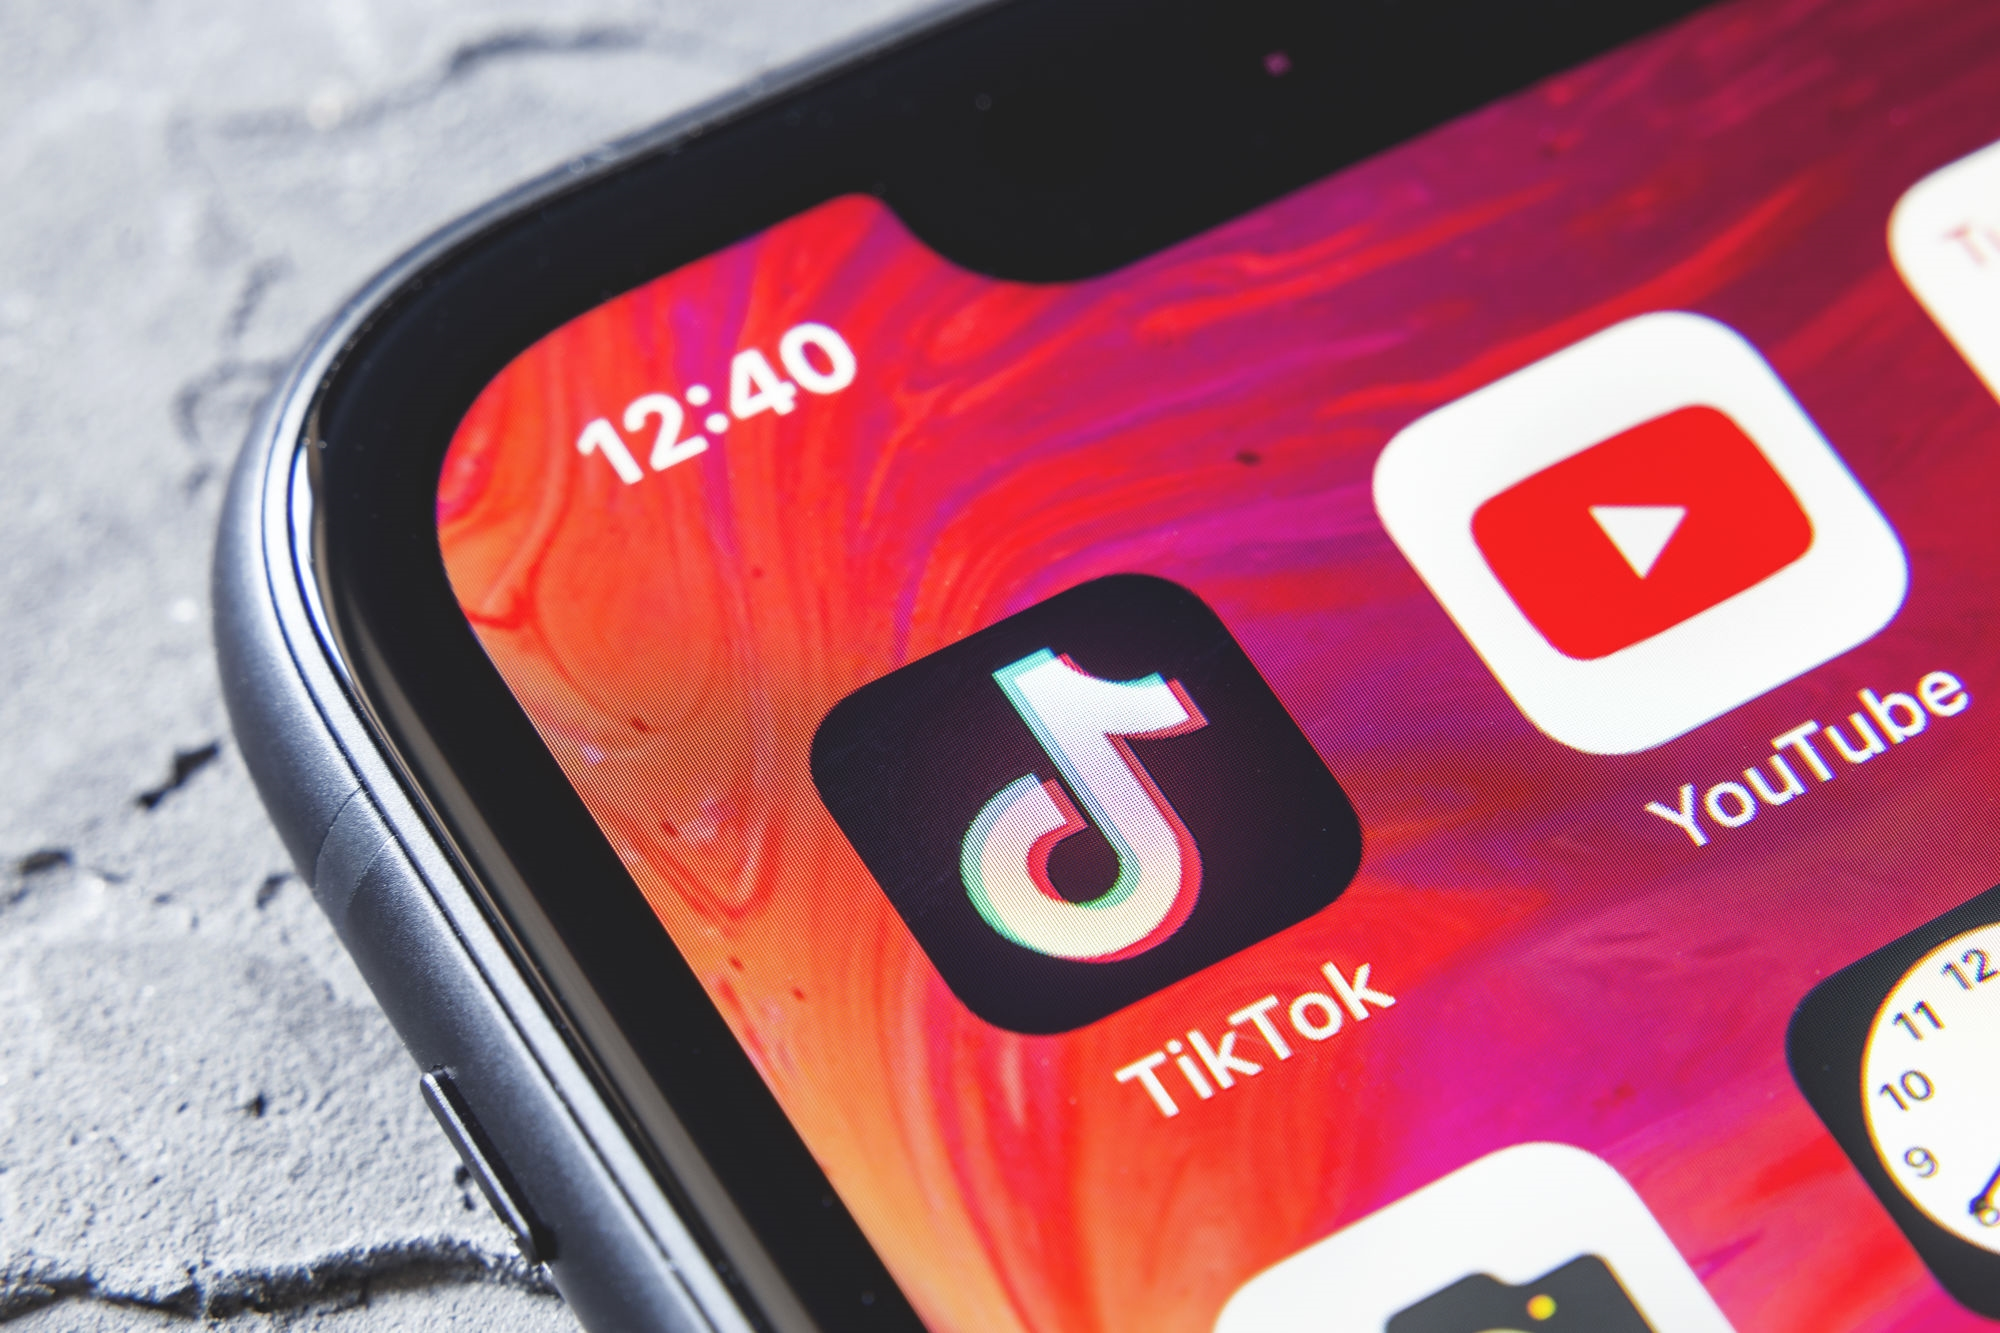 TikTok reportedly censored videos critical of the Chinese government   DeviceDaily.com